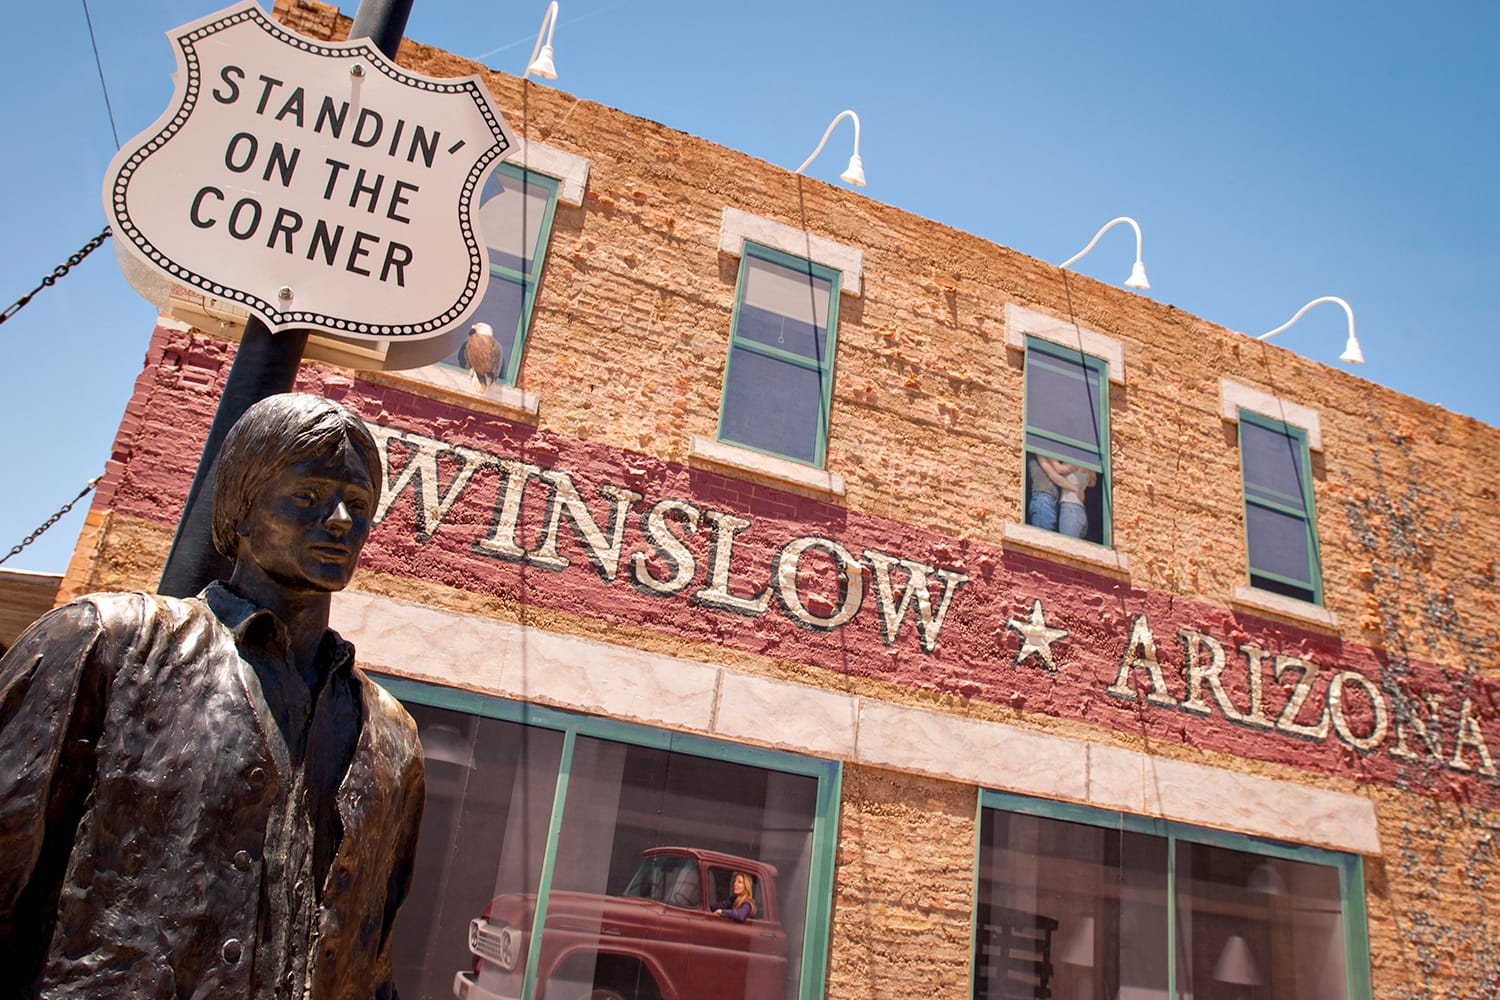 """""""Standin' On The Corner Park"""", pays homage to """"Take It Easy"""" a song written by Jackson Browne and popularized by the rock group Eagles, in Winslow, AZ."""